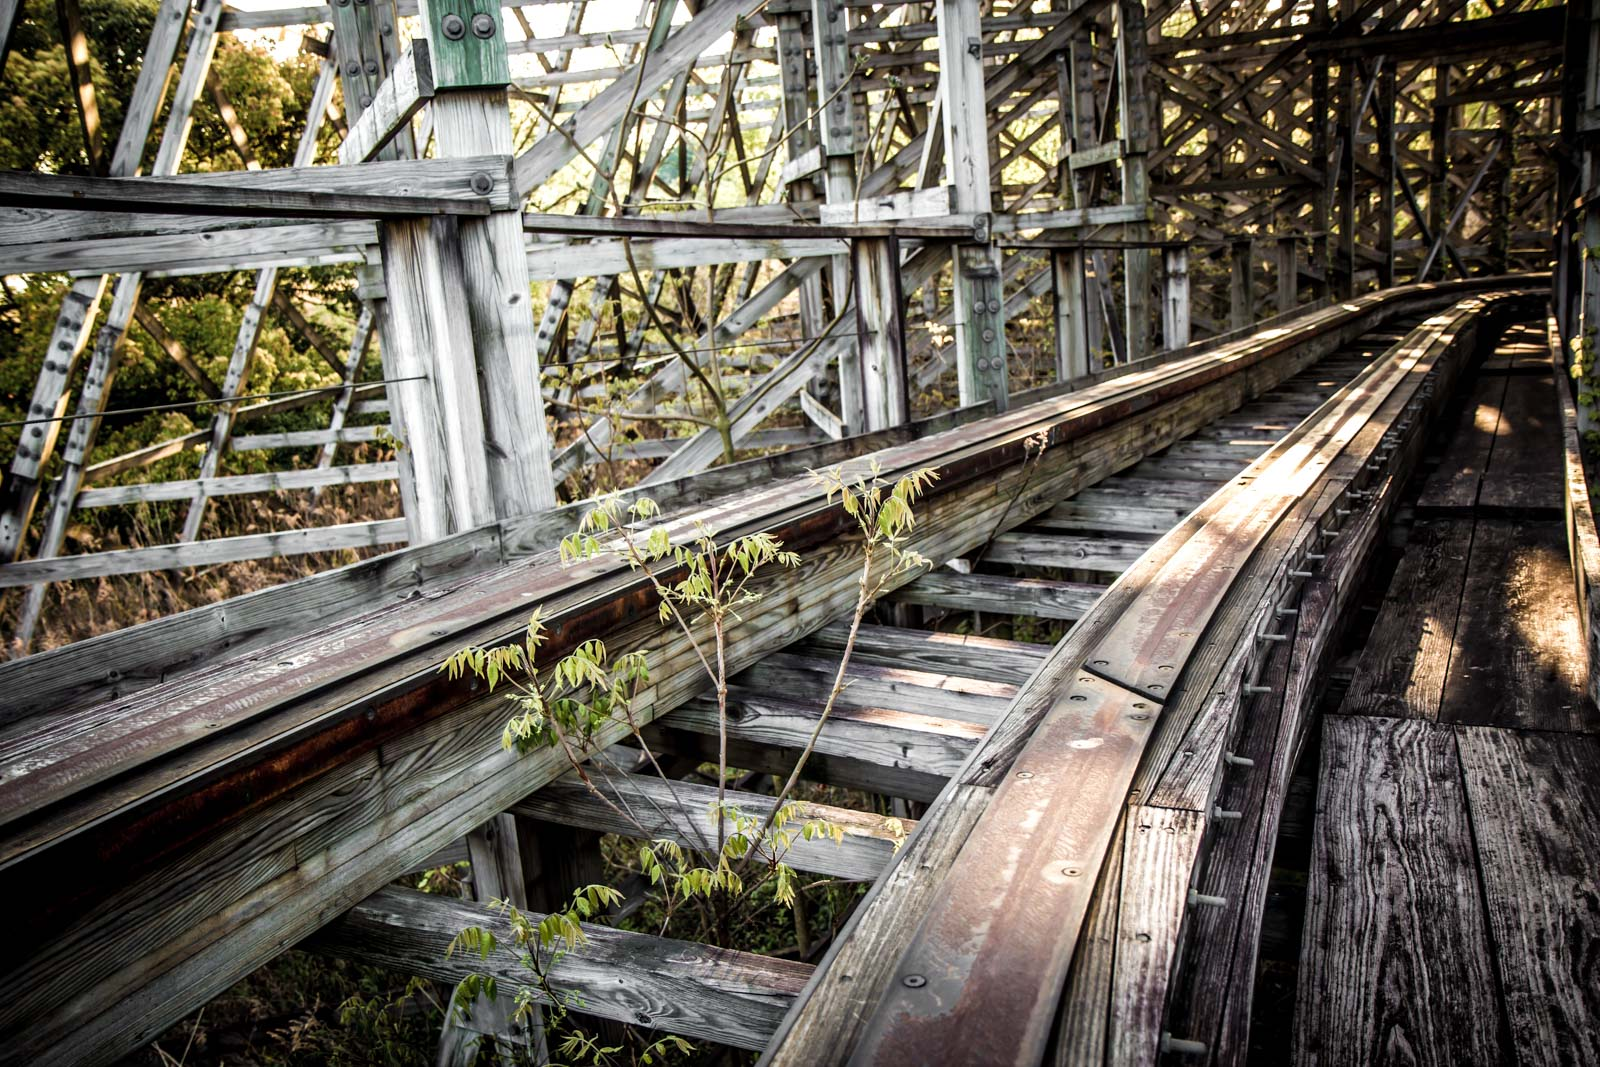 Nara Dreamland, abandoned theme park, Nara, Japan